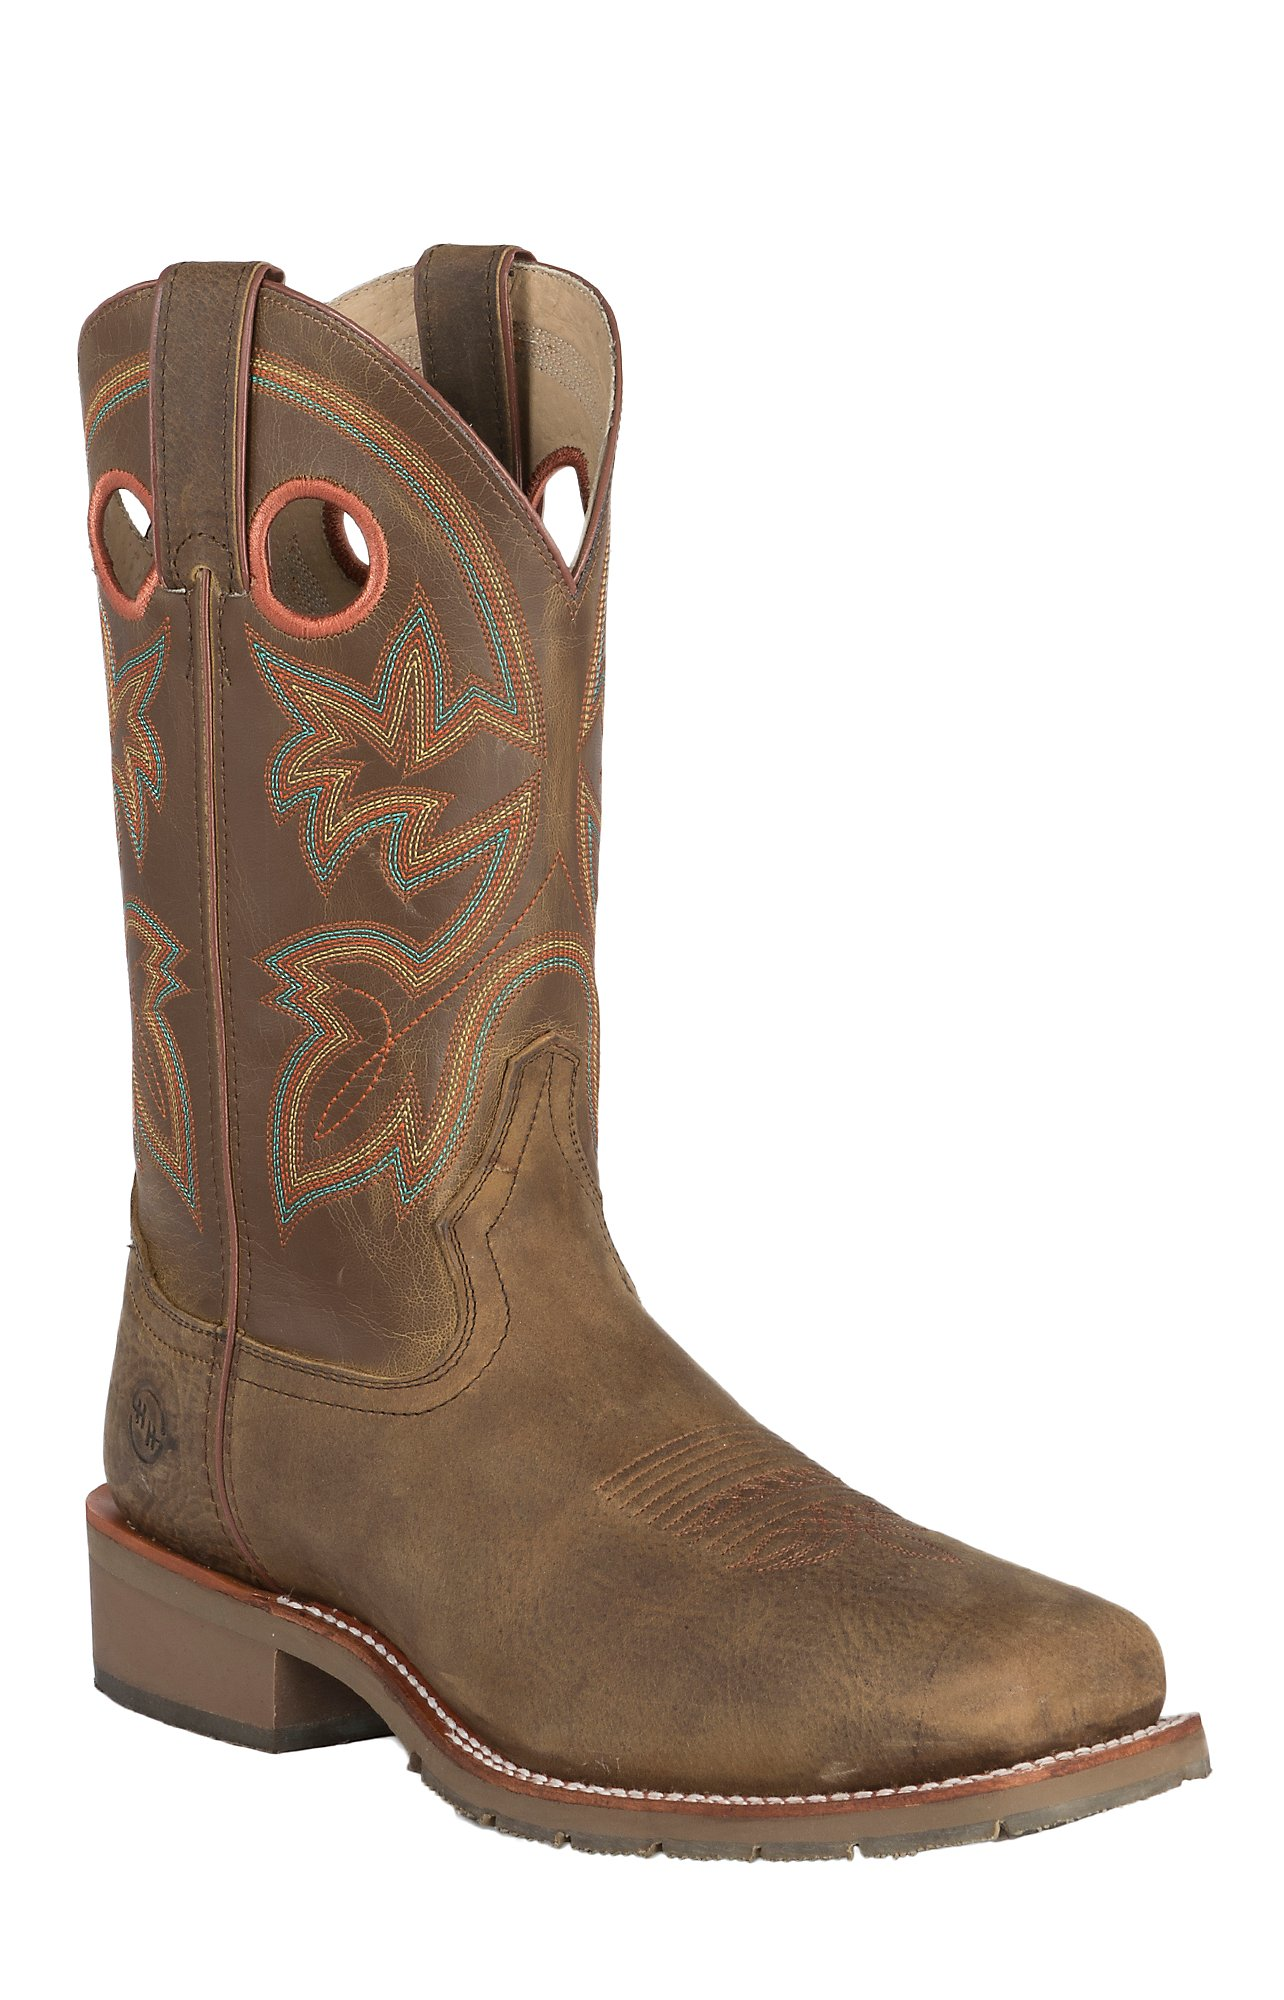 Shop Double H Boots Online | Free Shipping on HH Boots | Cavender's